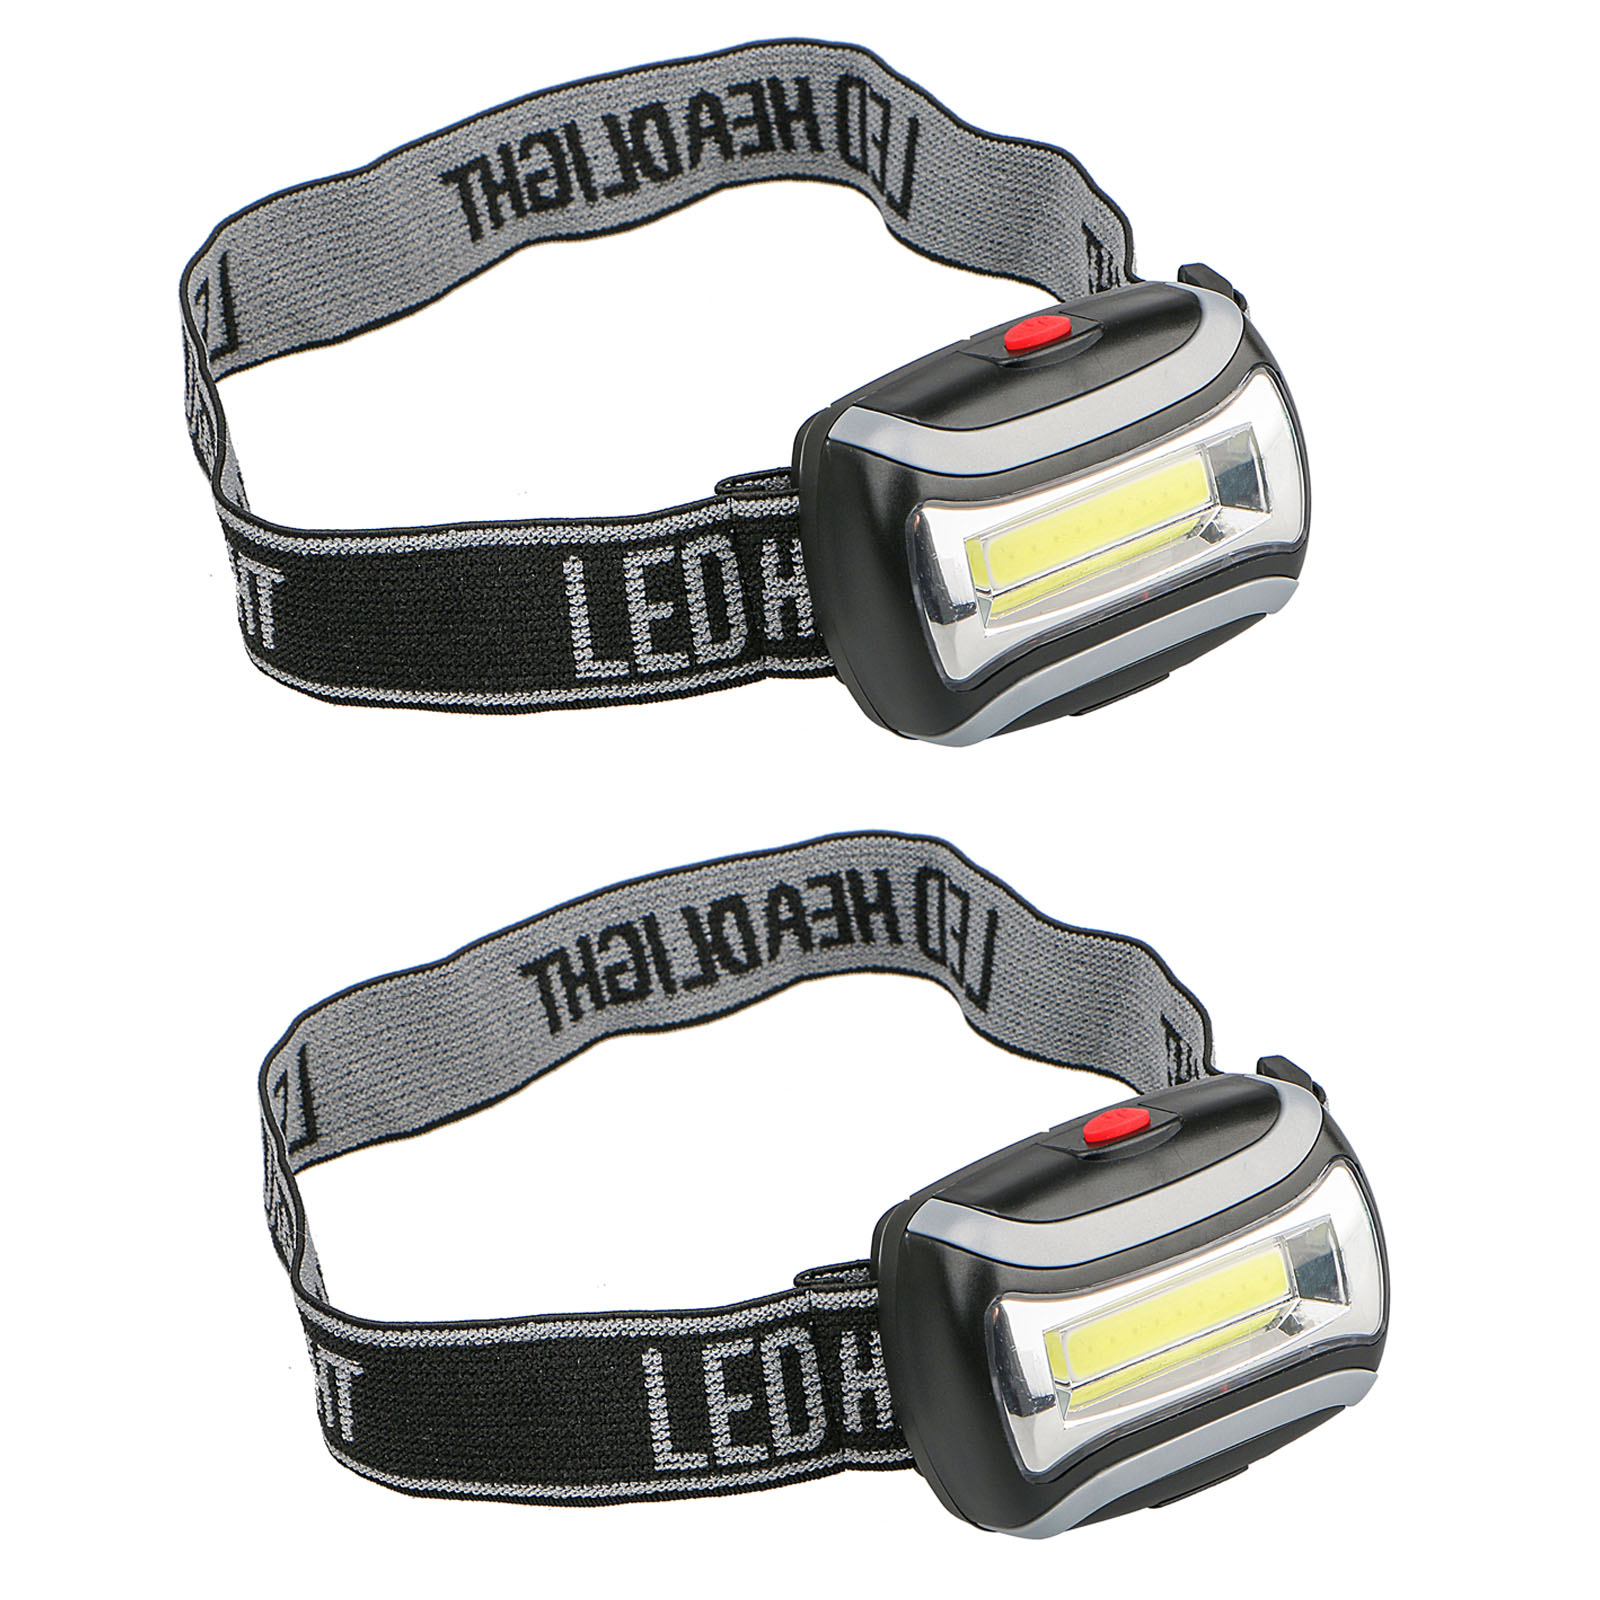 2-pack 5W 800LM 3-Mode Battery Operated COB Head Light LED Headlamp Flashlight for Camping Night Fishing